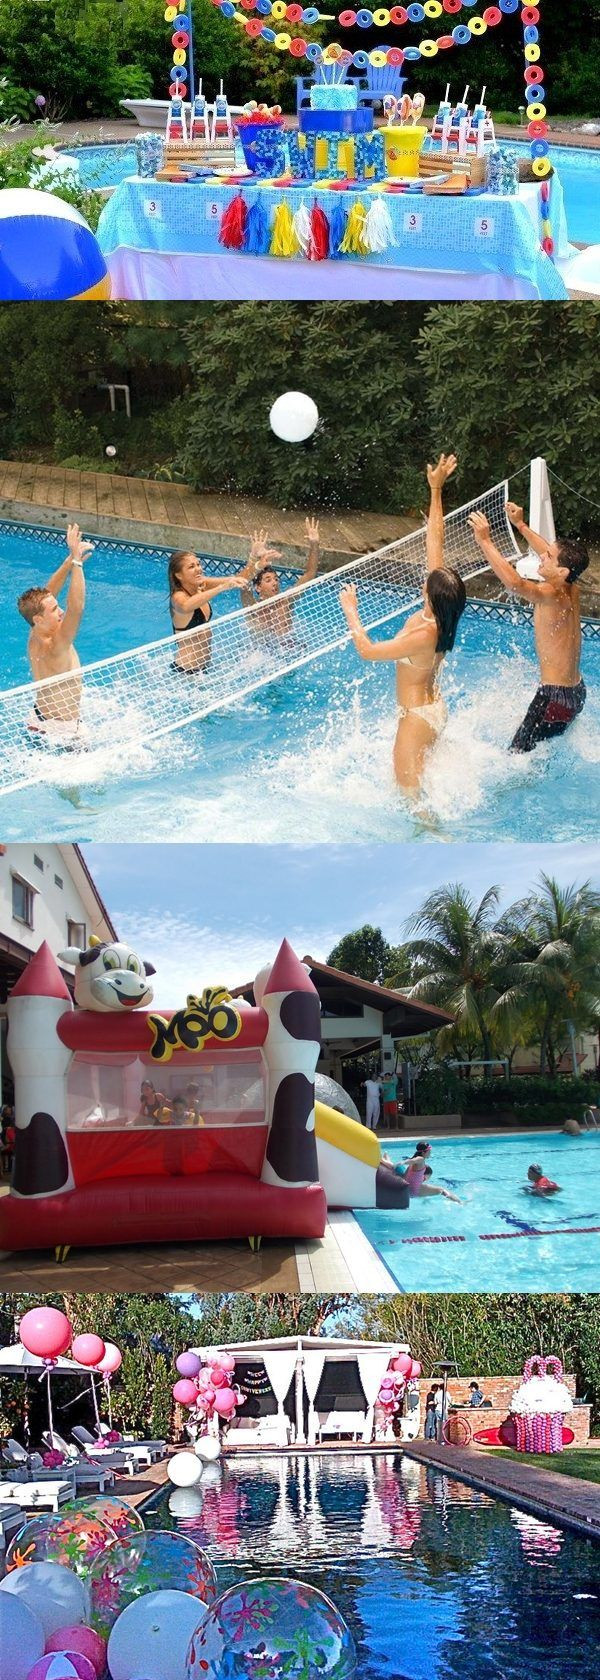 Teen Pool Party Ideas  4 Amazing Ideas for Teens Pool Party Lifestyle ♥